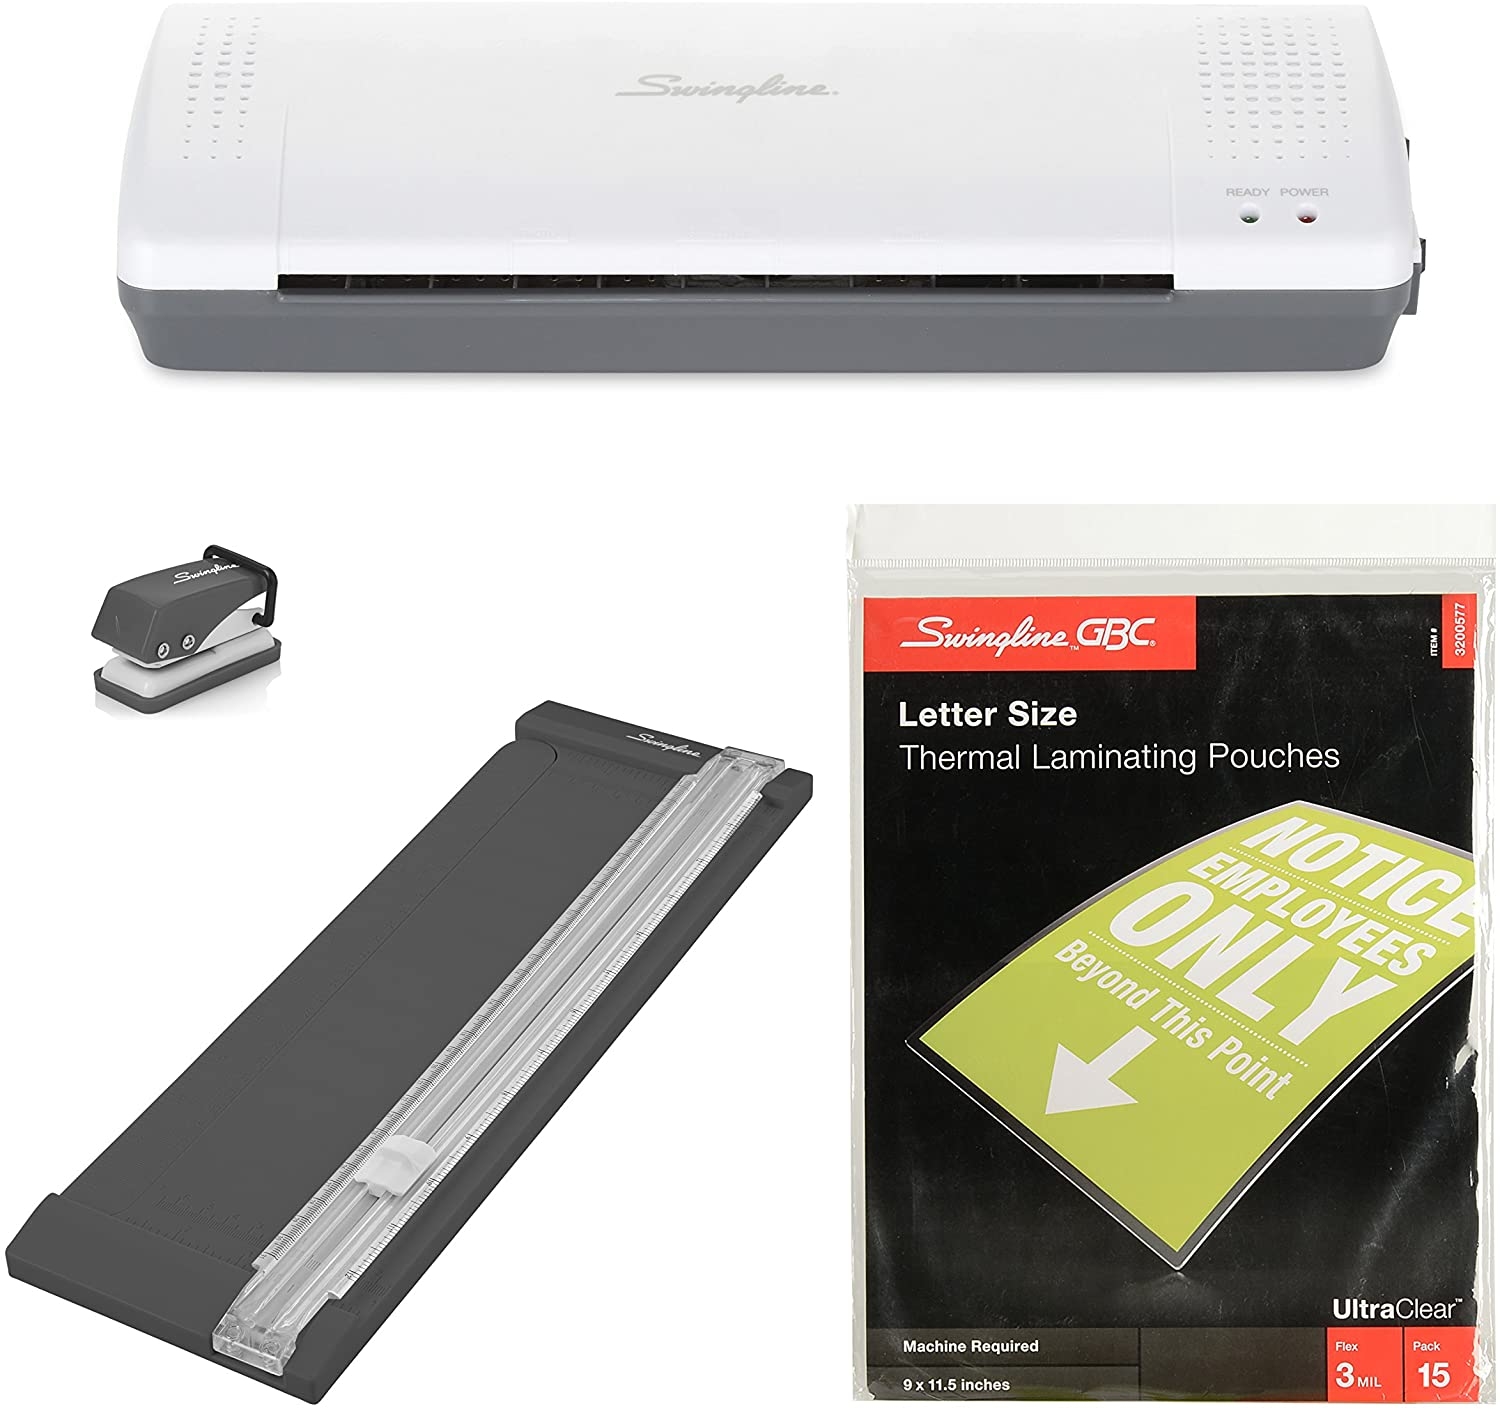 Swingline Lamination Starter Kit, Inspire Laminator, Pouches, Trimmer, Mini Hole Punch Included (1701869ECR),Gray